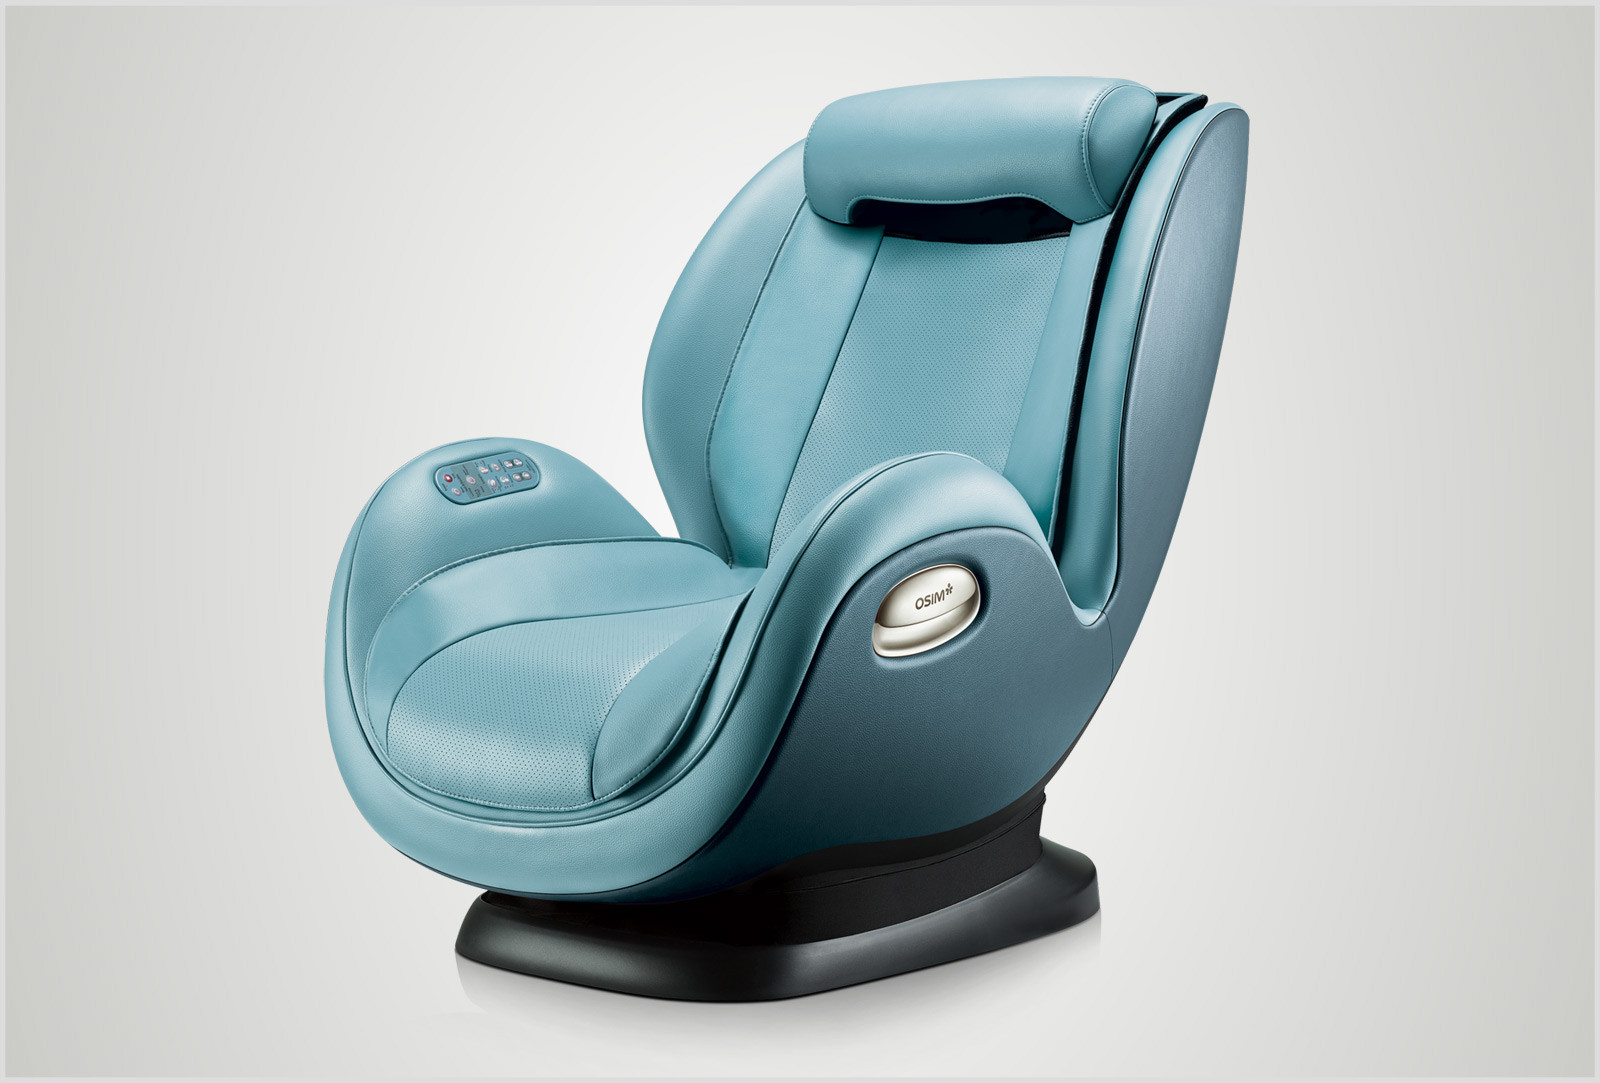 osim massage image mini blue malaysia my udivine product key chair